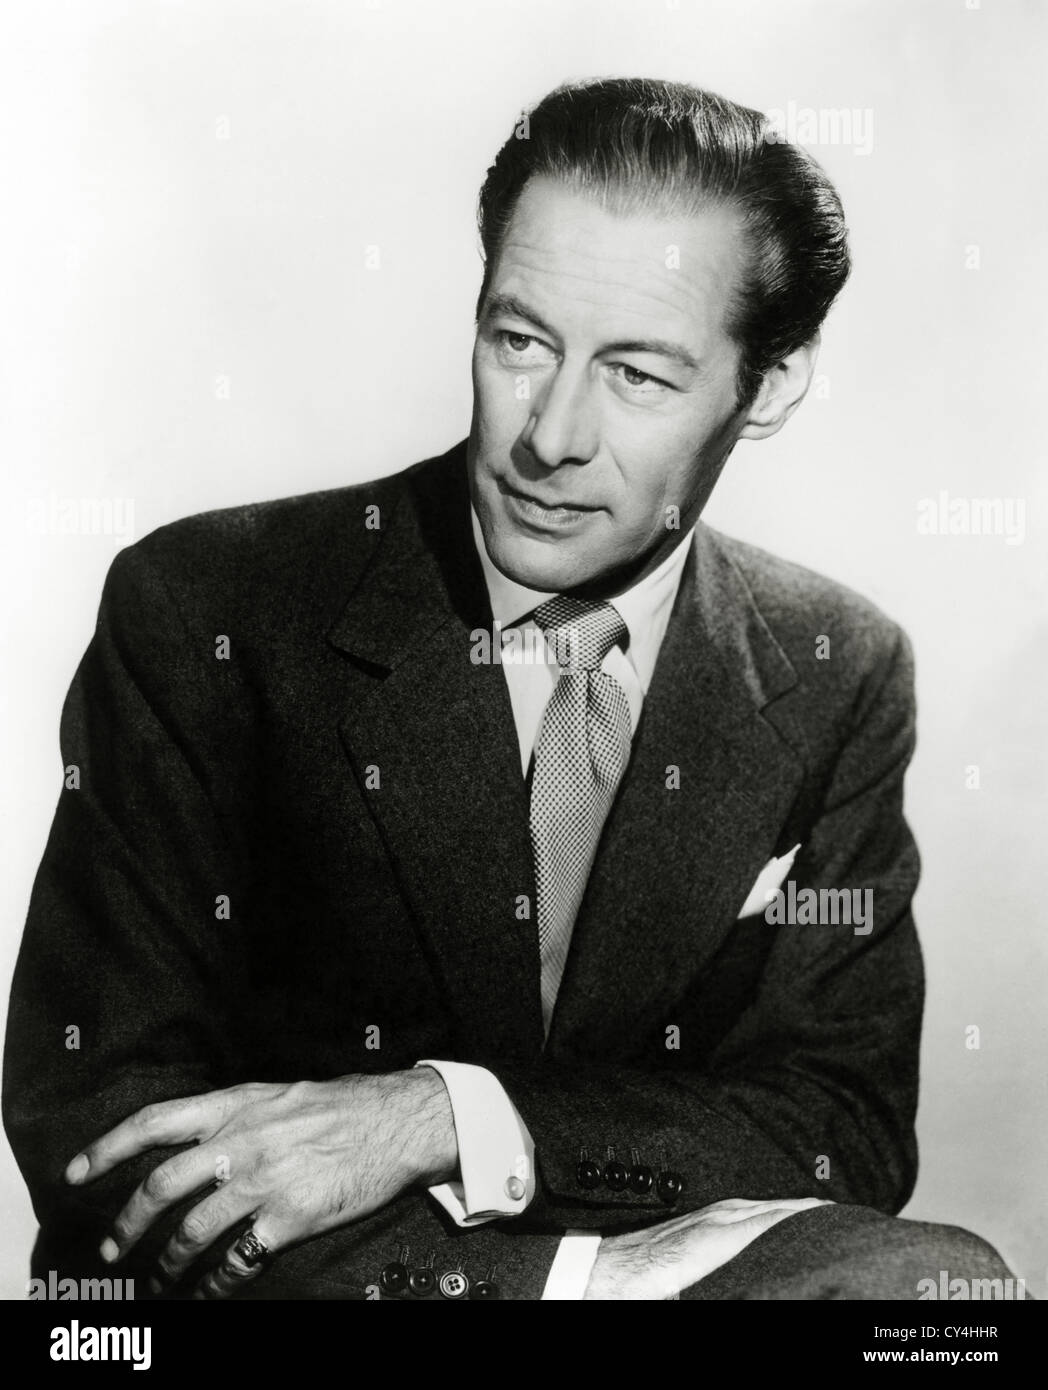 REX HARRISON, SIR (PORTRAIT) RXHS 005 MOVIESTORE COLLECTION LTD - Stock Image